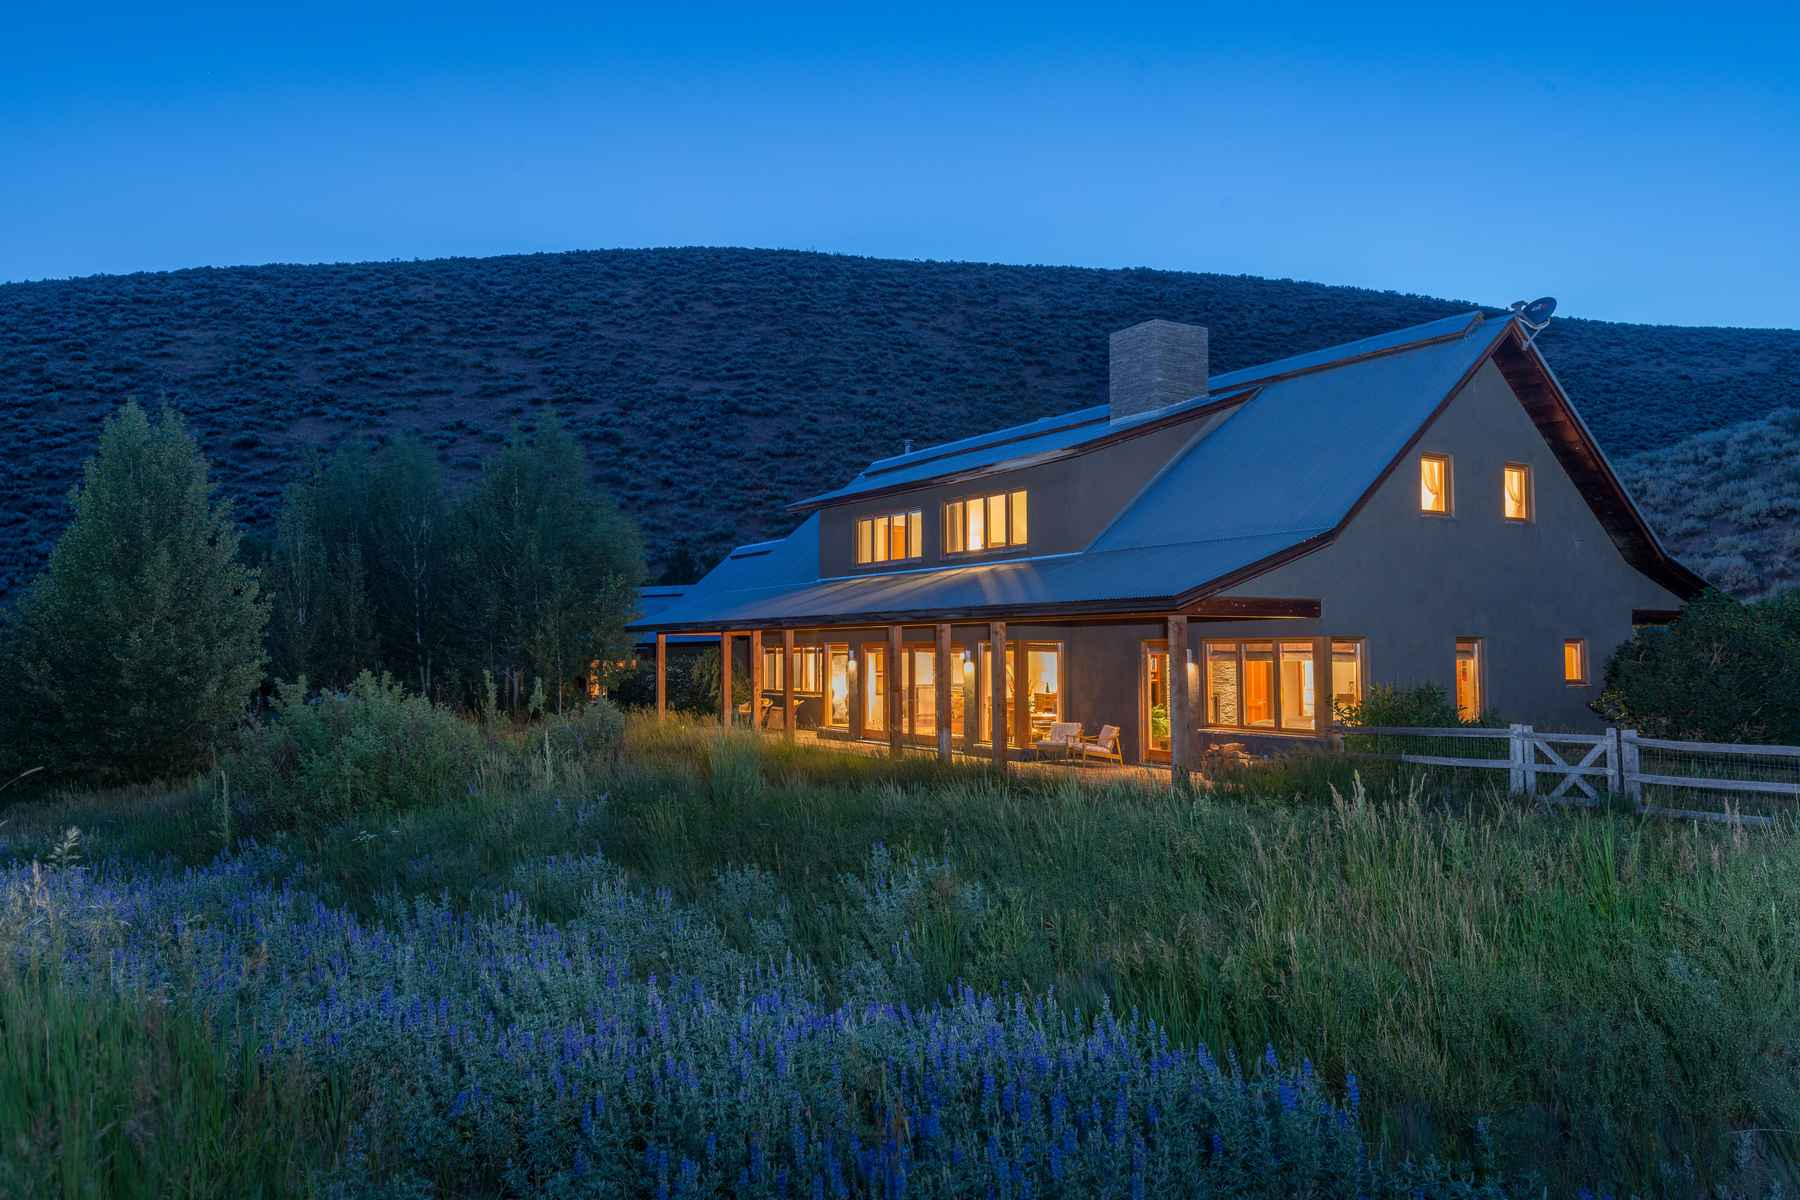 Casa Unifamiliar por un Venta en Mountain Contemporary with Privacy 224 Red Devil Dr Hailey, Idaho 83333 Estados Unidos